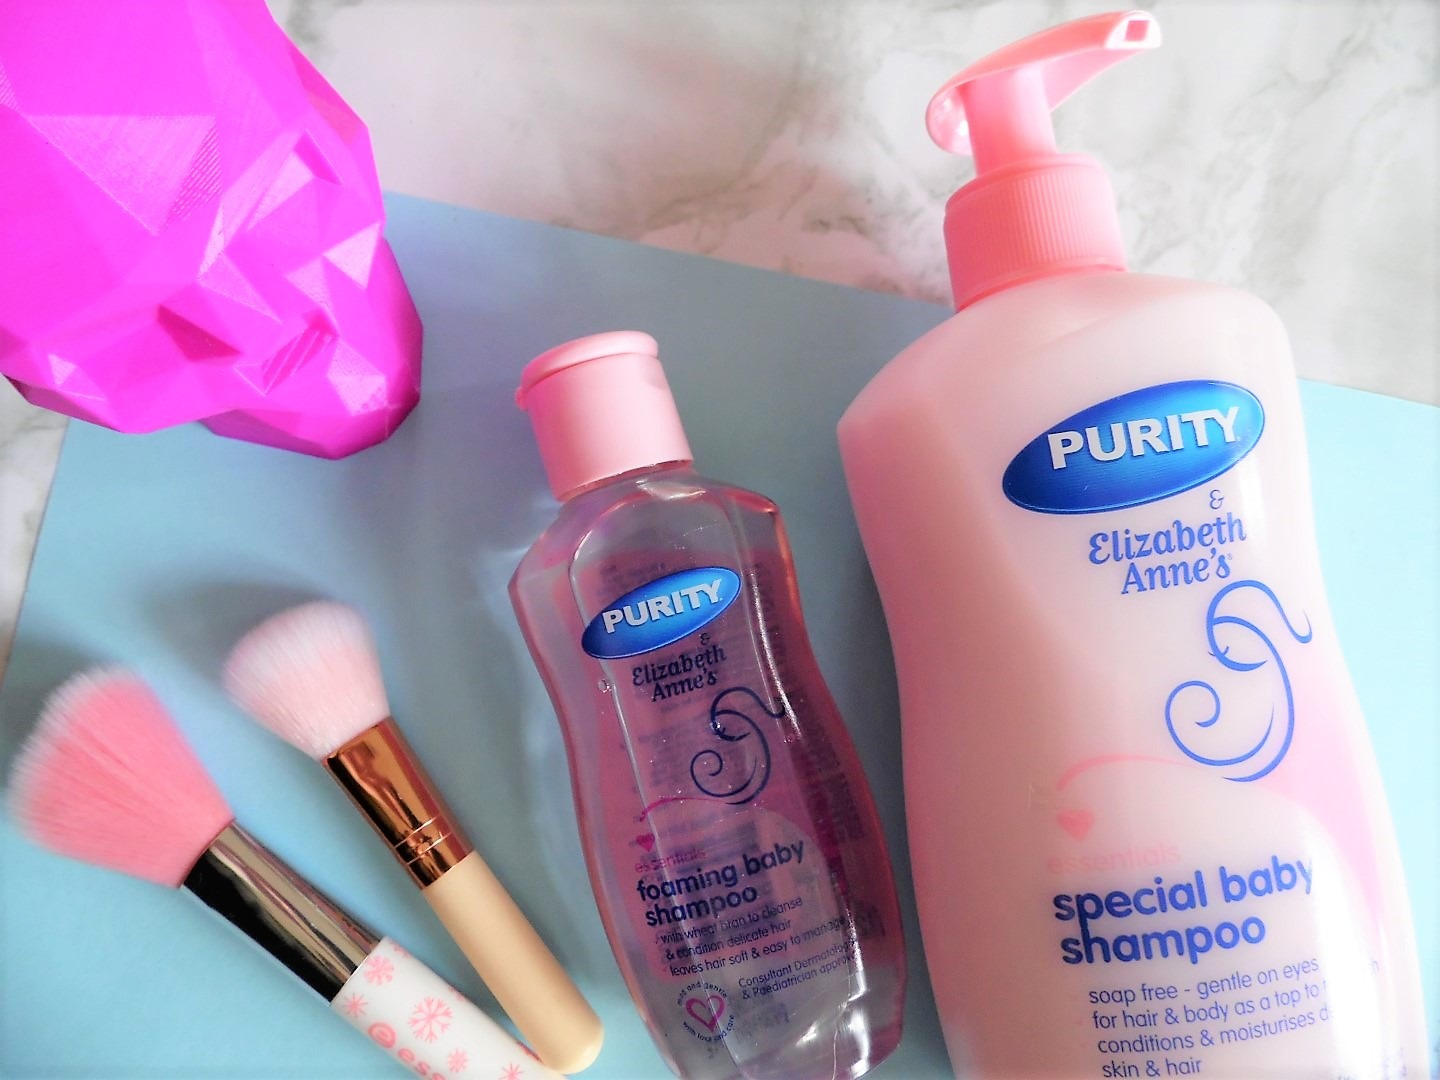 beauty hacks with baby shampoo - By Megan Kelly